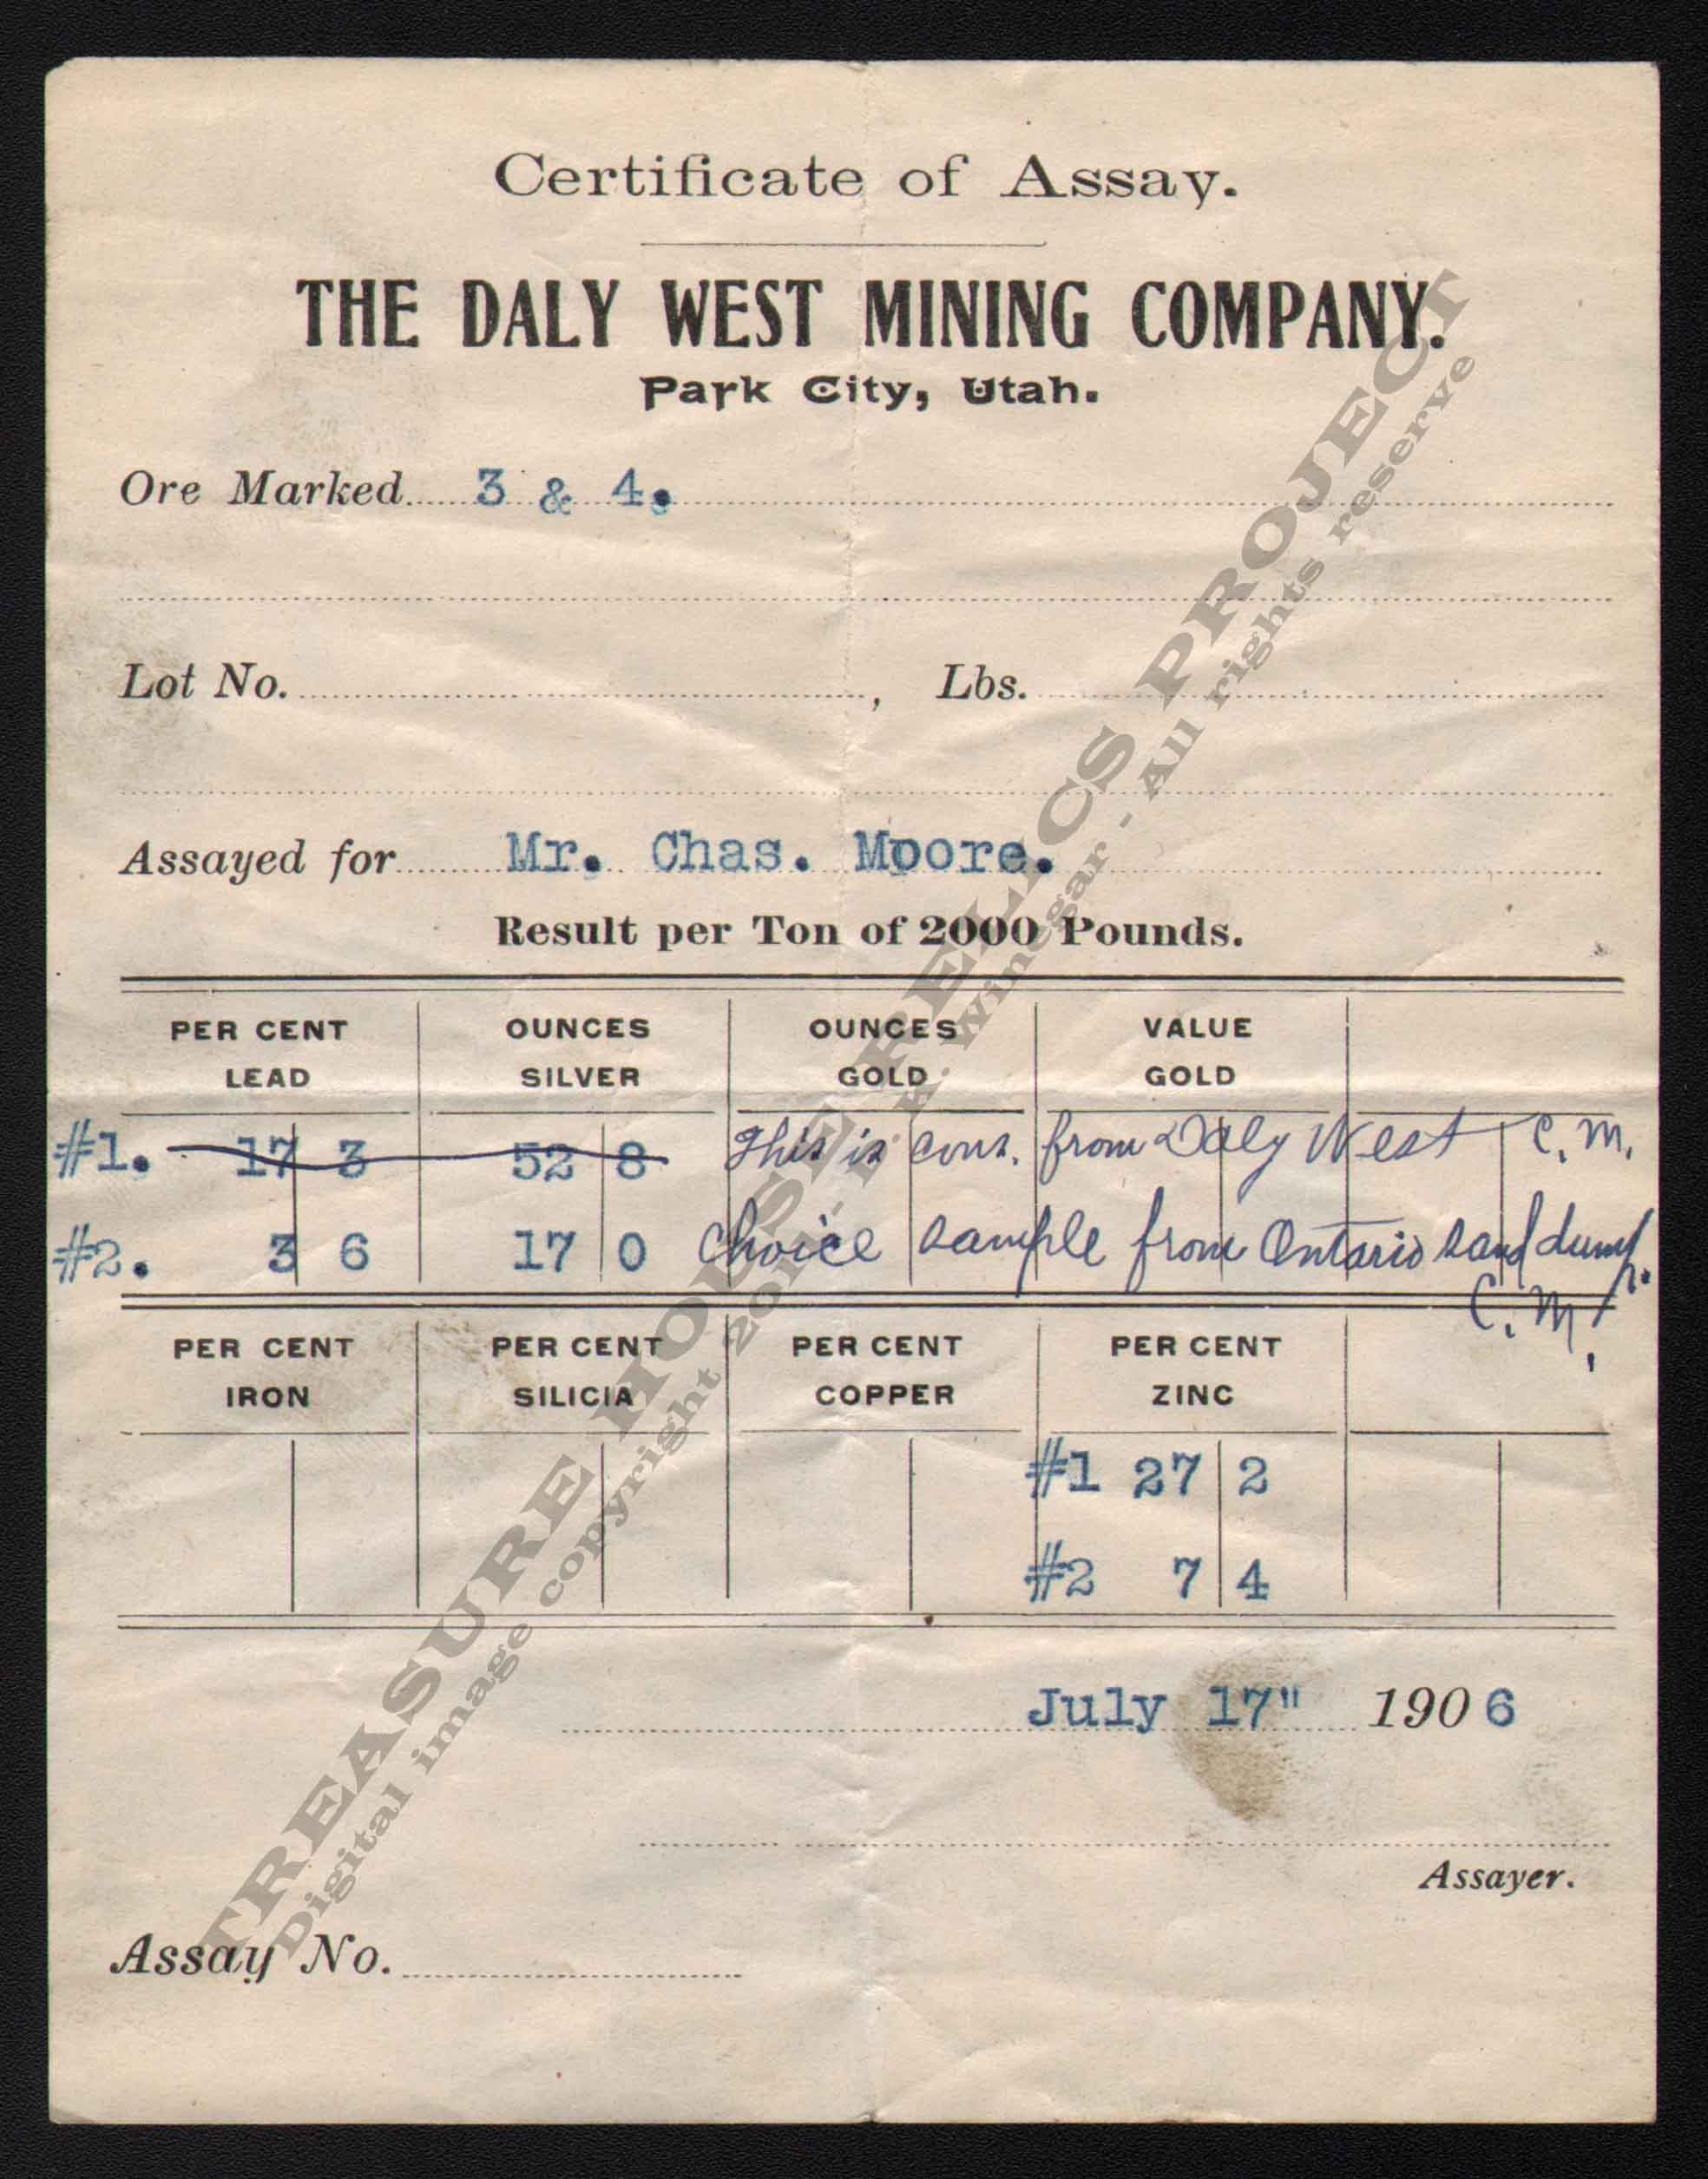 LETTERHEAD/ASSAY_DALY_WEST_MINING_CO_7_23_1906_KIRK_400_CROP_EMBOSS.jpg